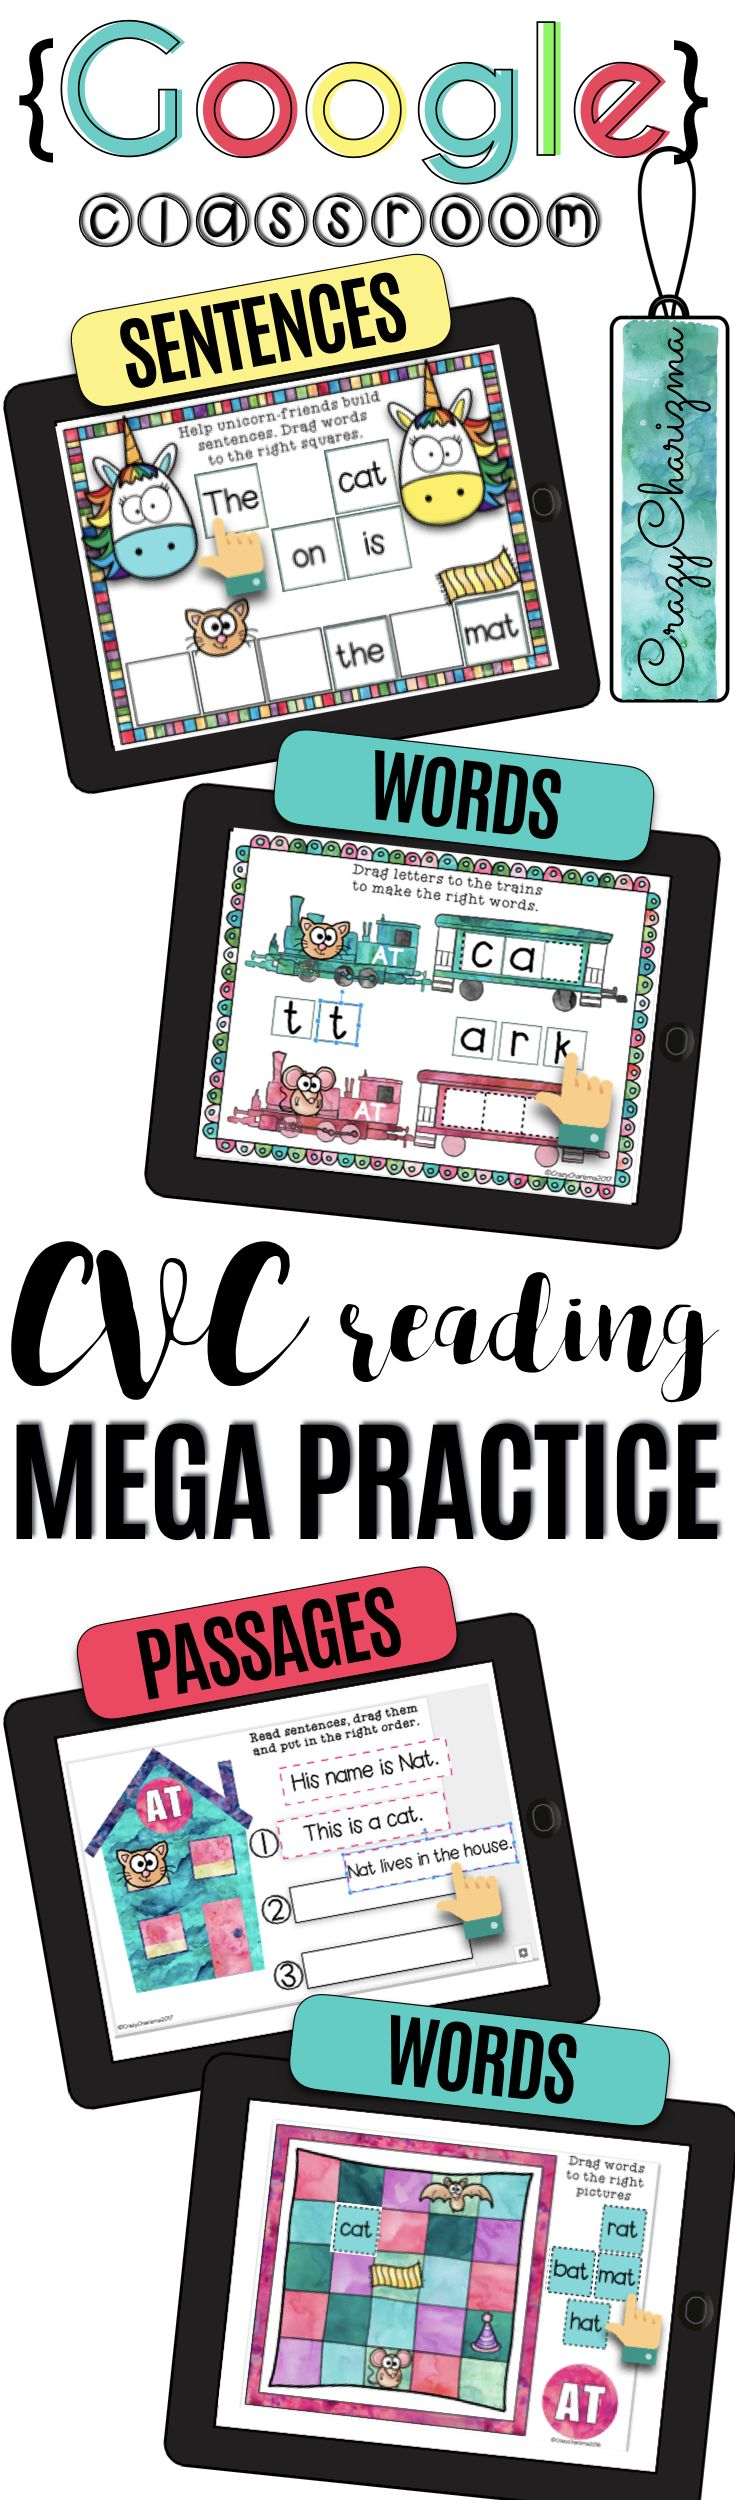 Have you been looking for fun 1:1 CVC word work activities to use in Google Classroom? Try this digital MEGA PRACTICE. Go paperless and embrace technology! Practice and review CVC words while reading words, sentences, and fluency passages. The packet is perfect for 1:1 classroom in kindergarten, first grade, as well as second grade. Perfect for your literacy block, daily 5, guided reading, spelling, RTI, or during literacy centers. | CrazyCharizma